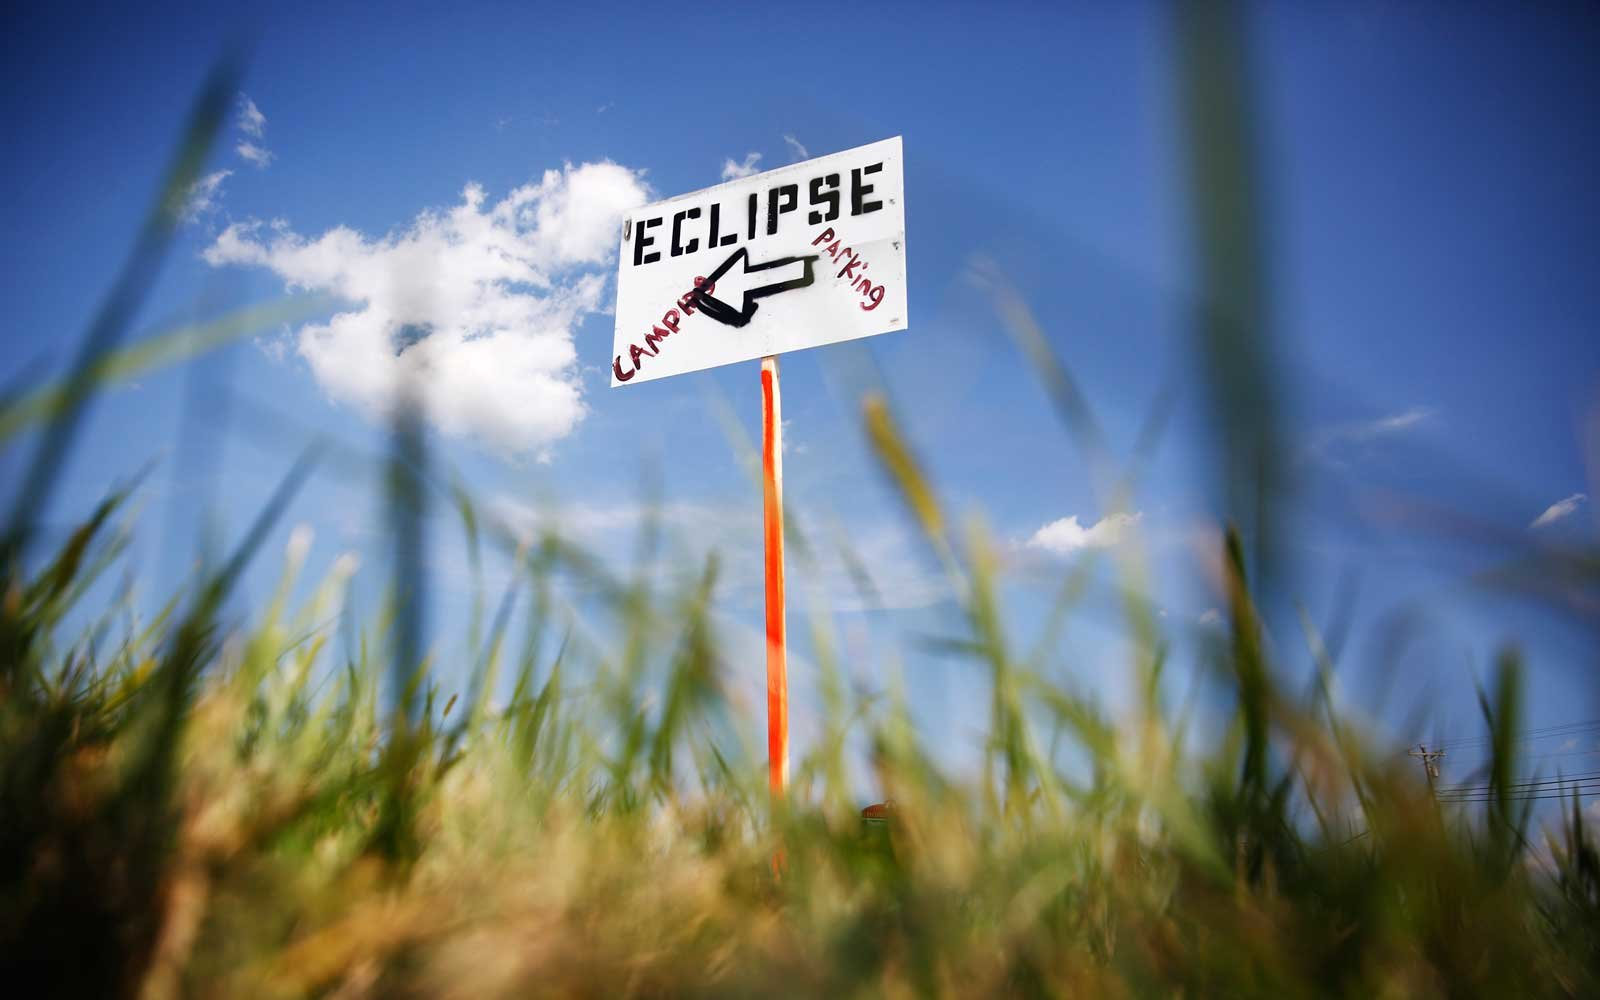 Eclipse Parking is seen along the side of the road in Hopkinsville city nearest the point of greatest eclipse, Aug. 20, 2017